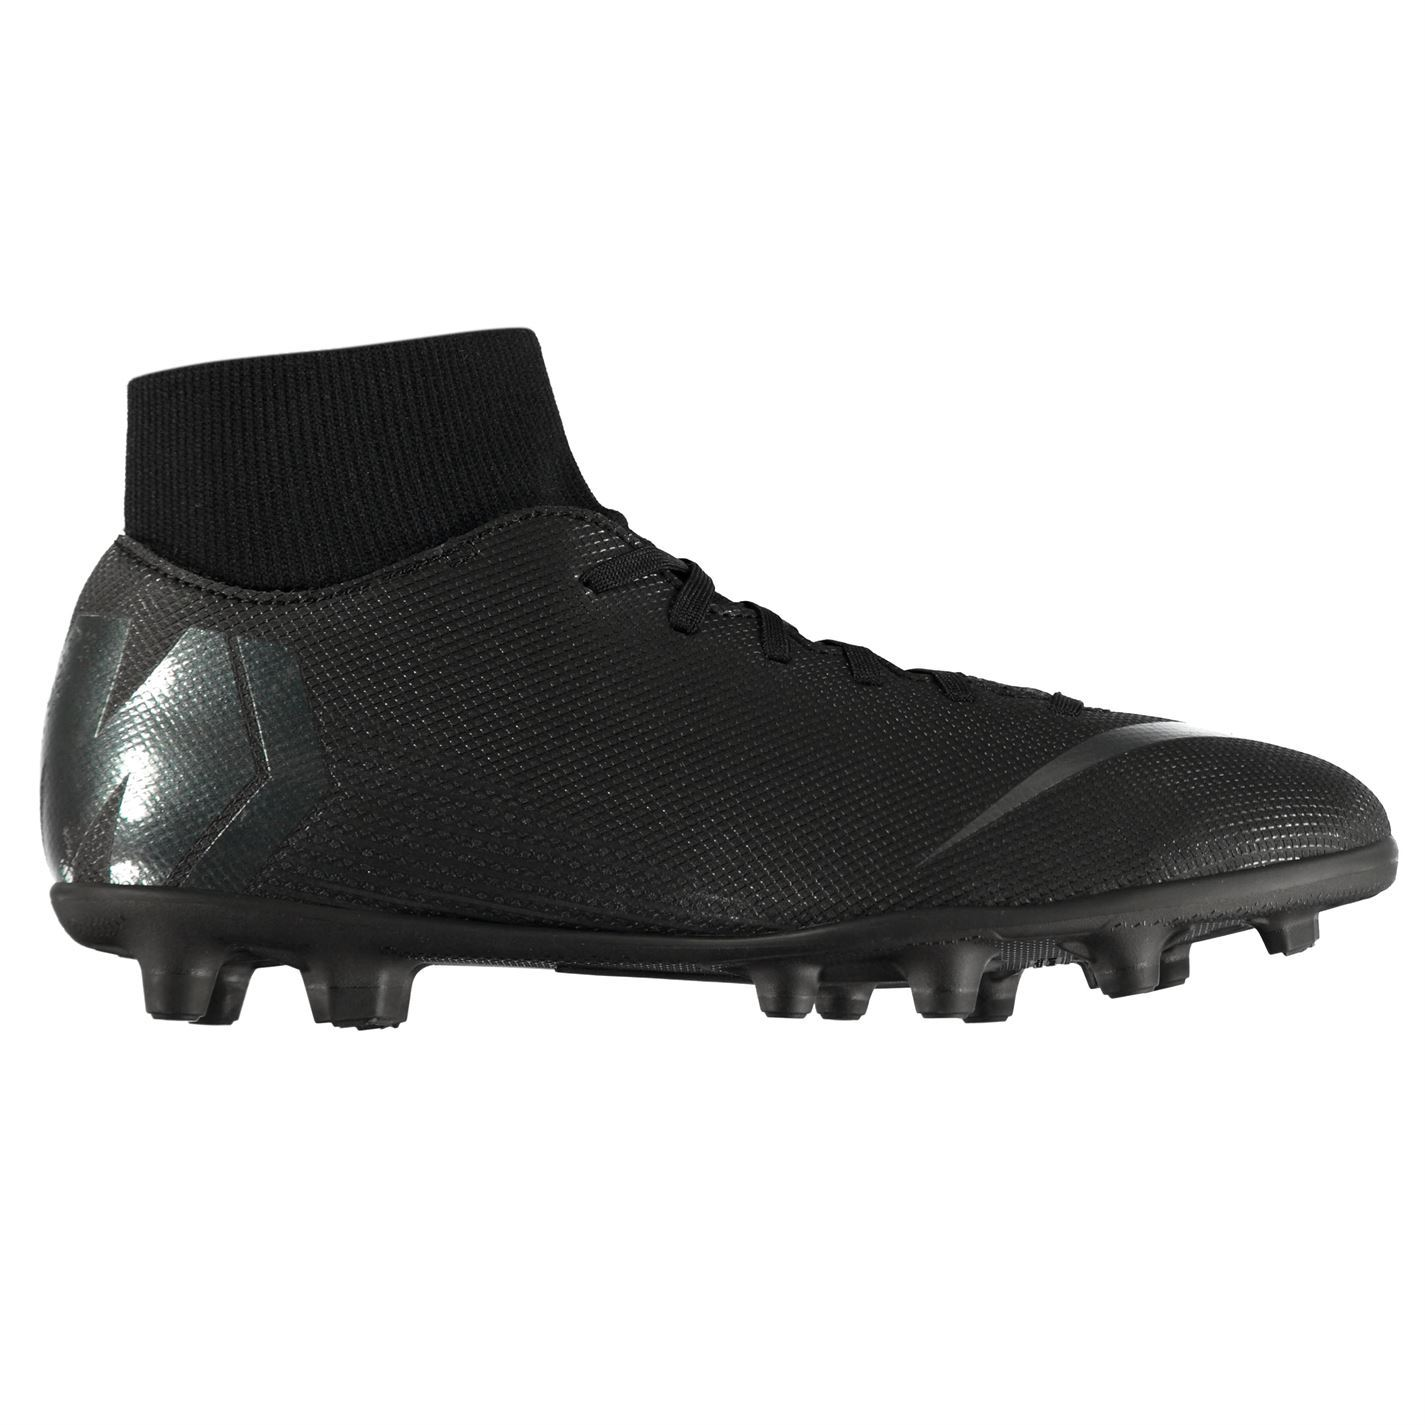 check out f679f c7ab8 Nike-Mercurial-Superfly-Club-DF-FG-Firm-Ground-